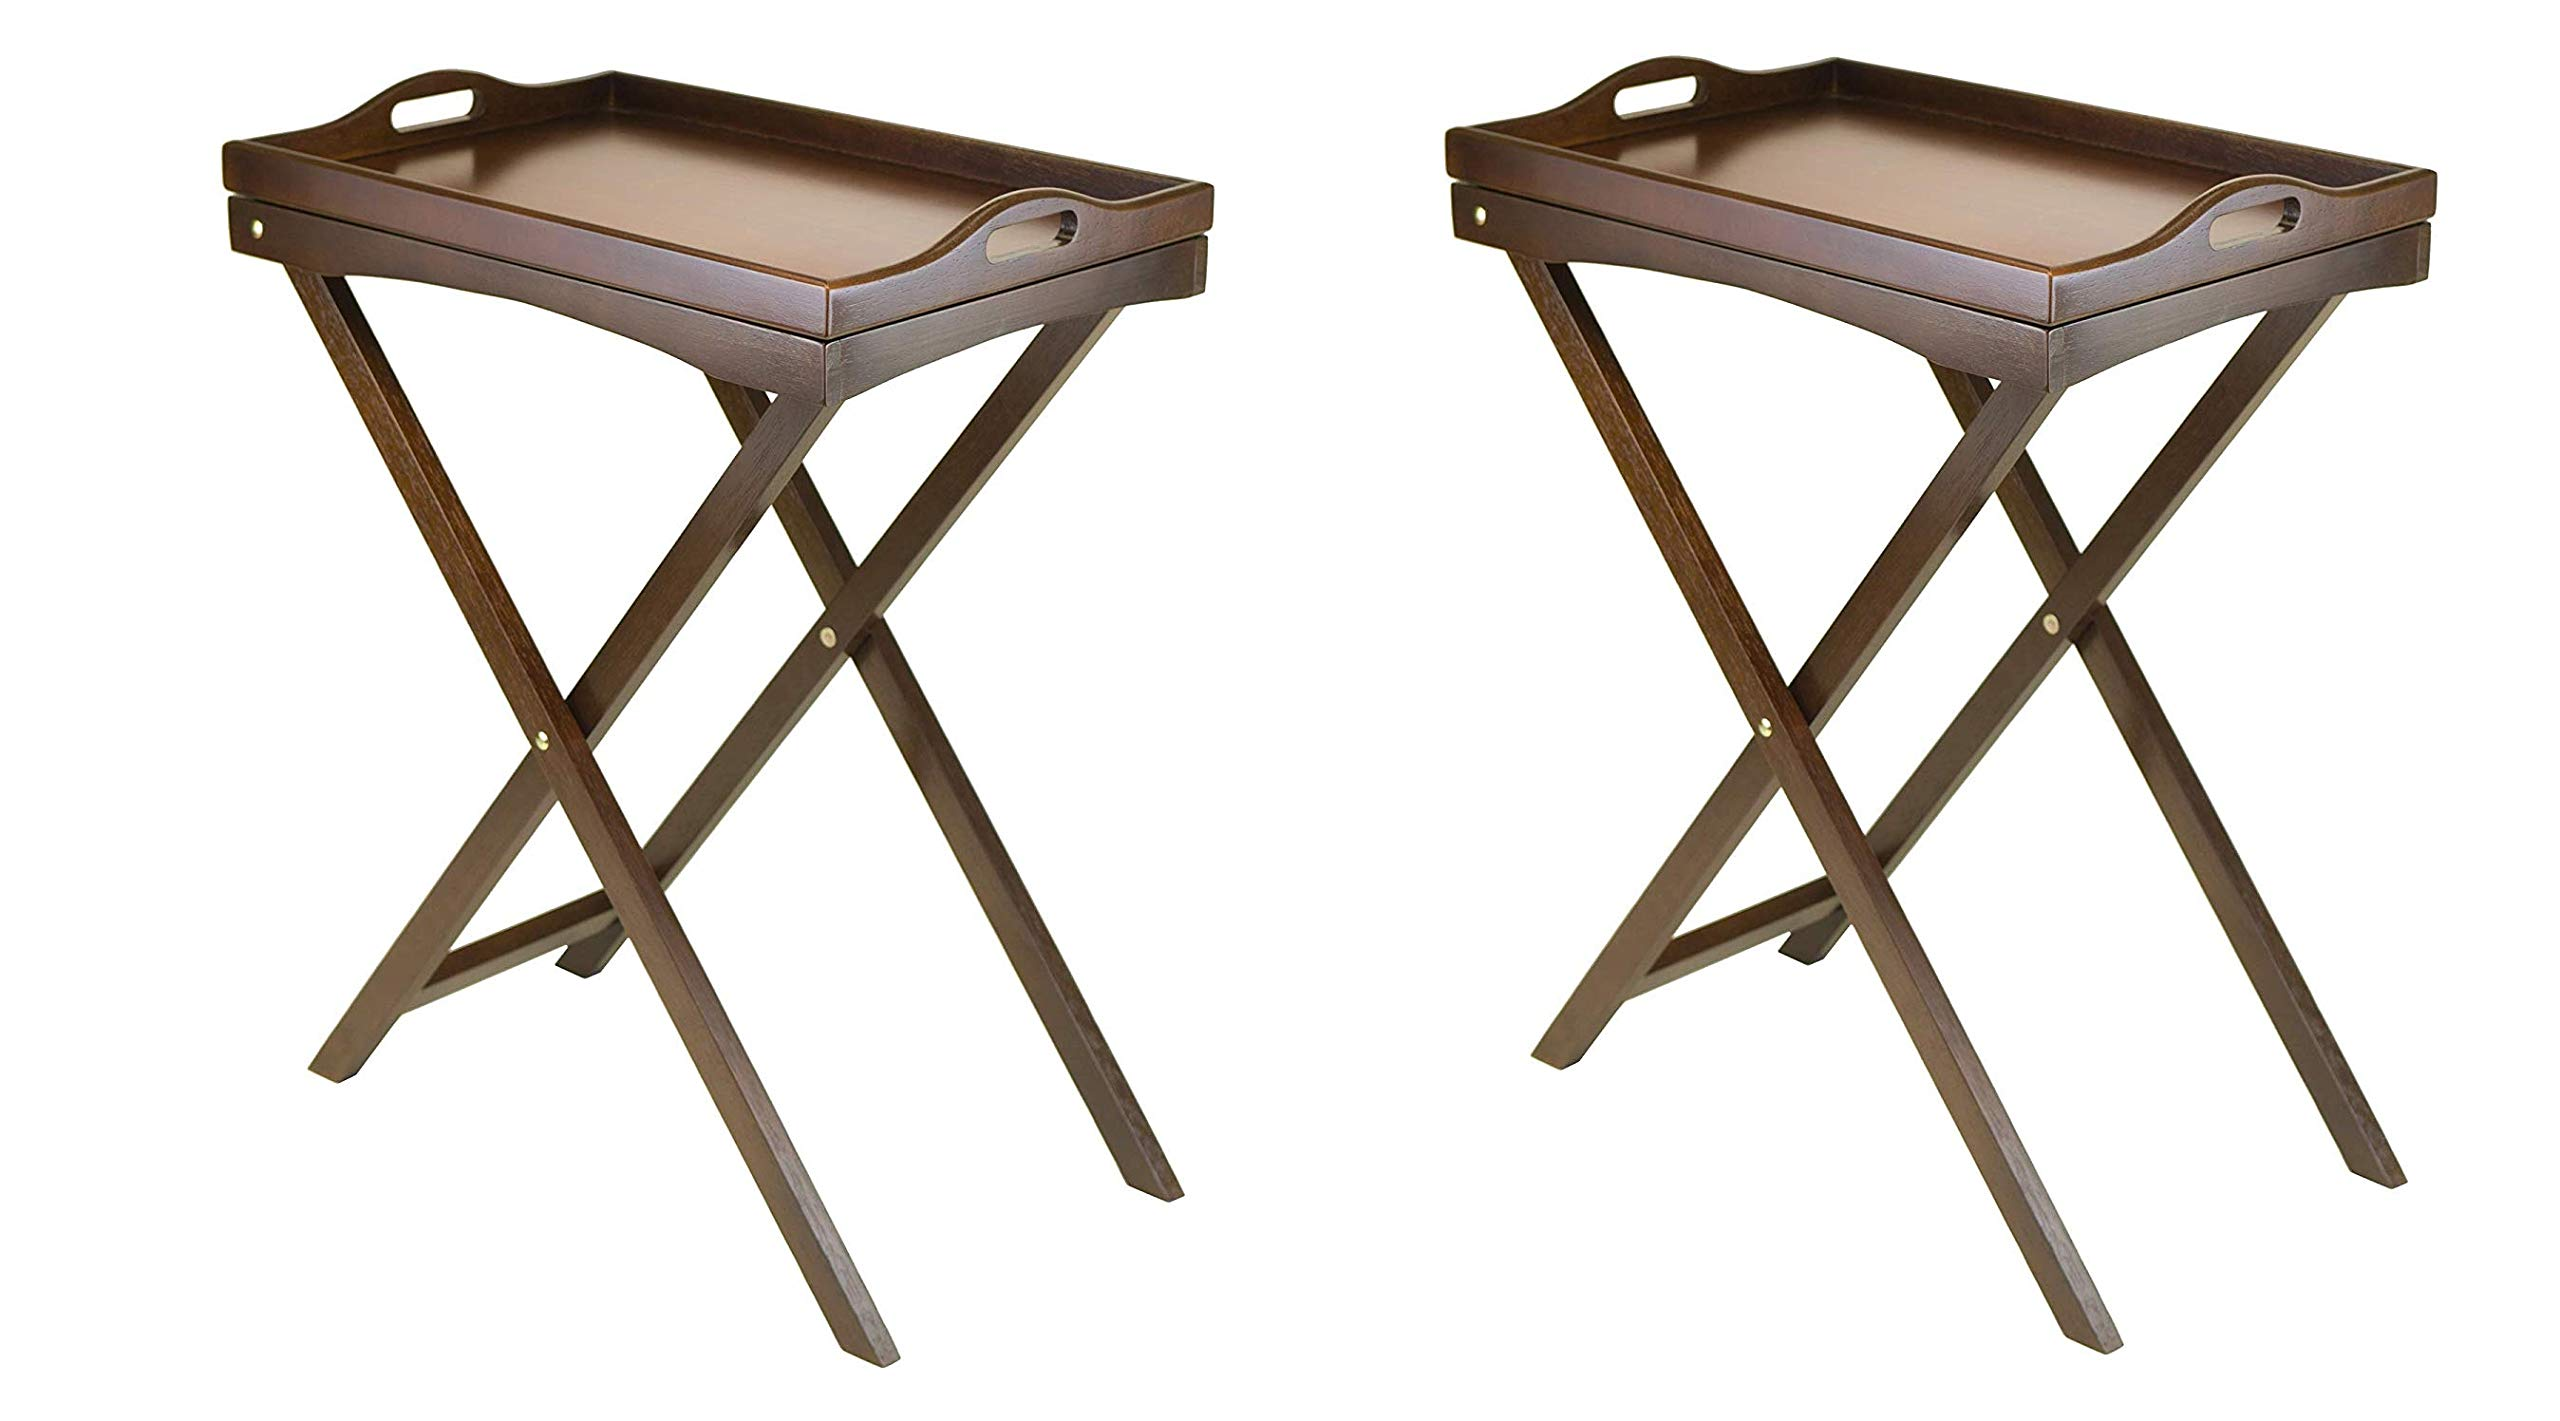 Winsome Wood Devon Butler TV Table with Serving Tray (Pack of 2) by Winsome Wood